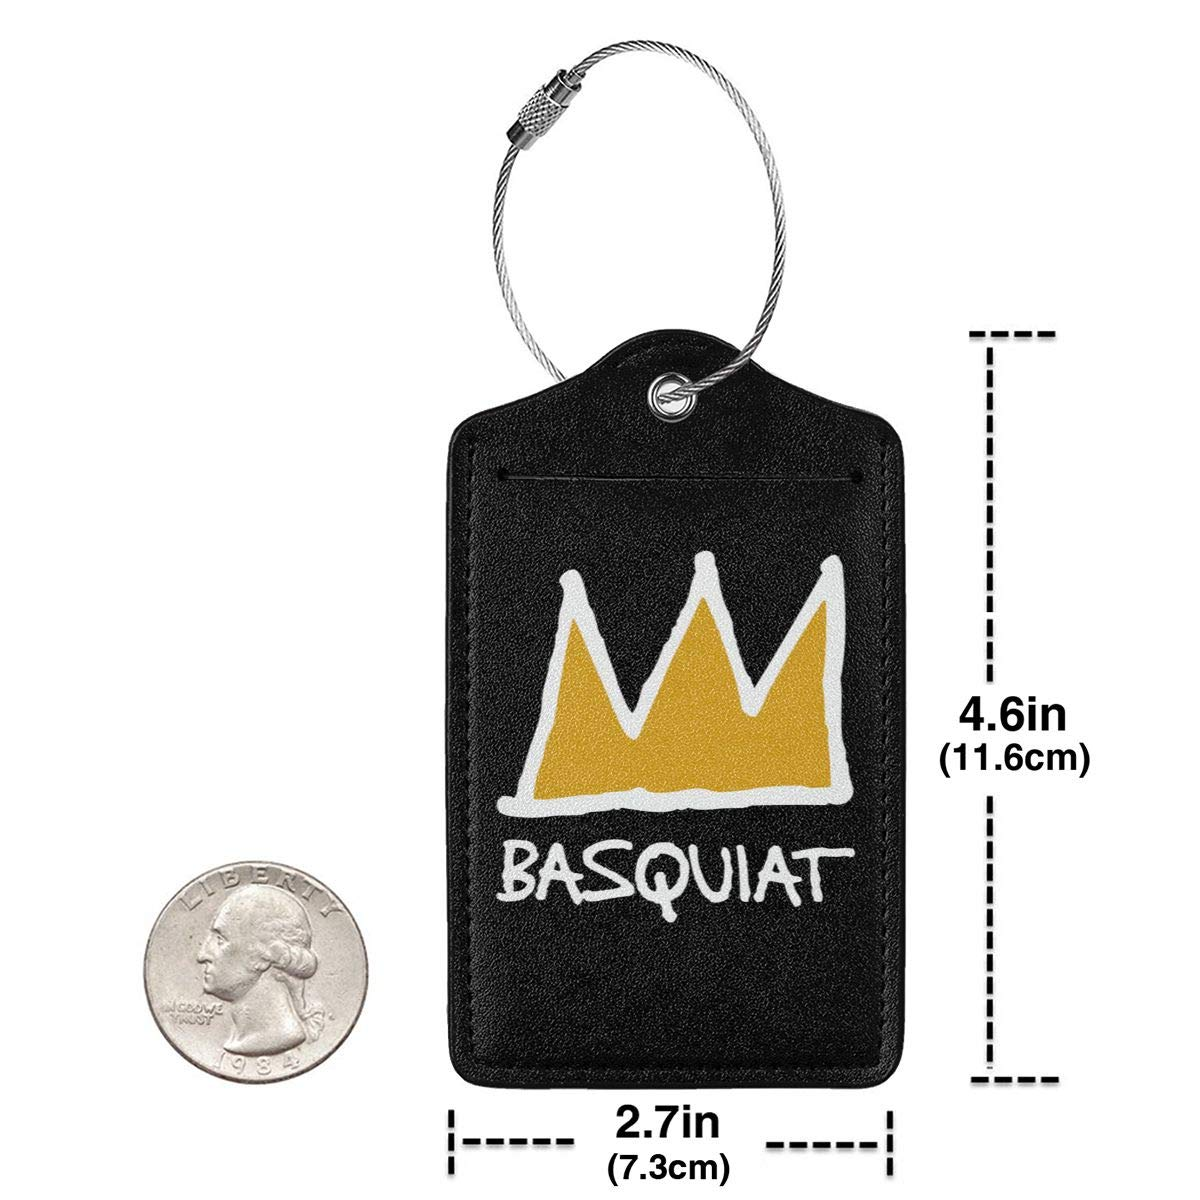 Basquiat Leather Luggage Tag Travel ID Label For Baggage Suitcase